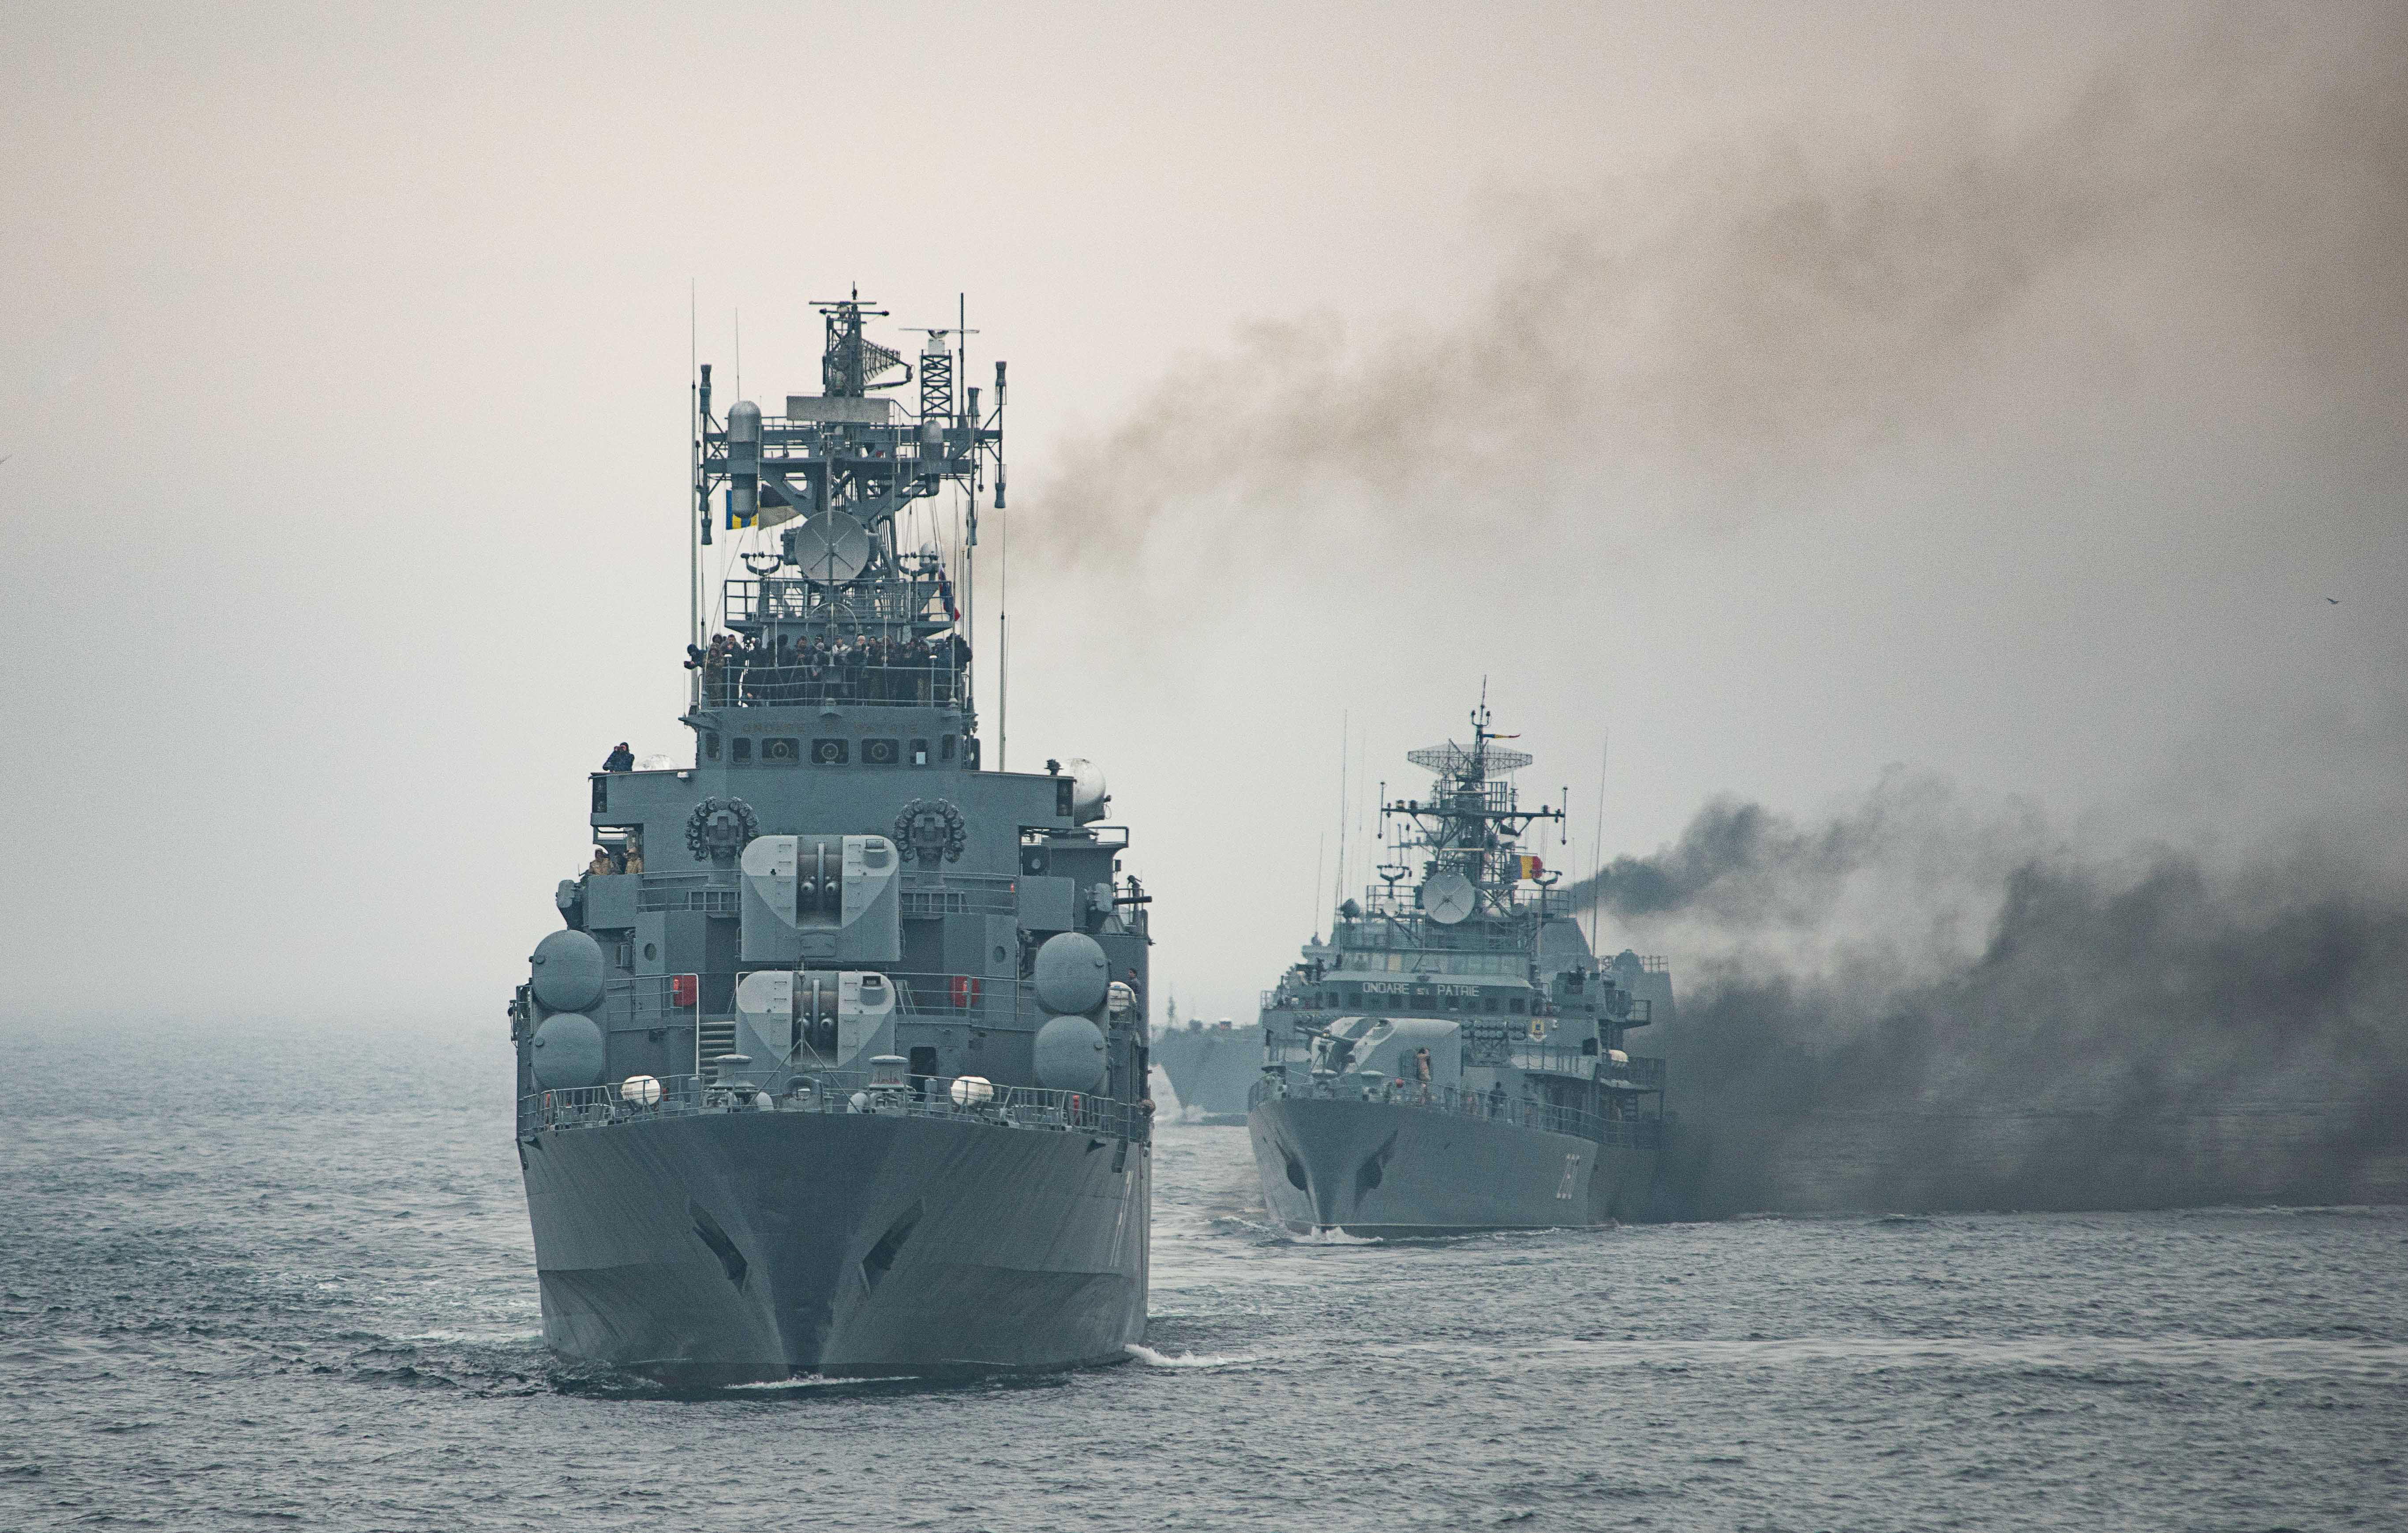 Working with allies in the Black Sea